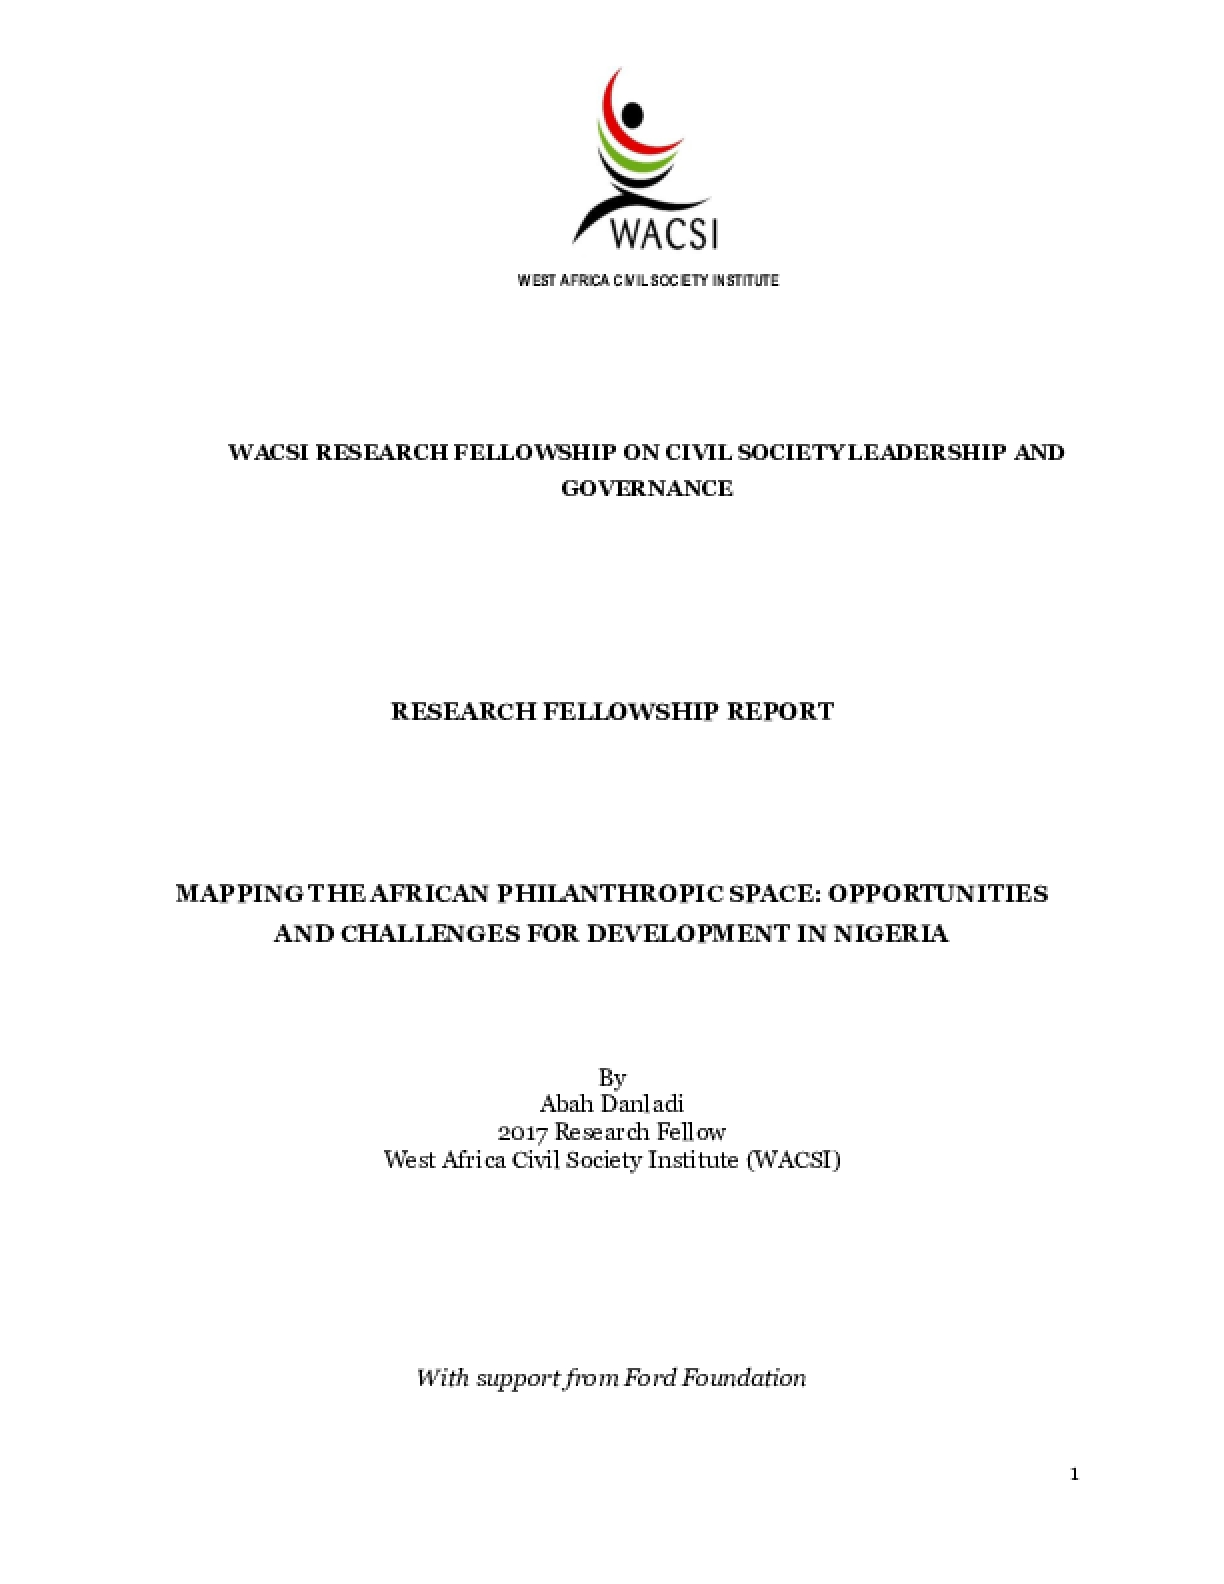 Mapping the African Philanthropic Space: Opportunities and Challenges for Development in Nigeria